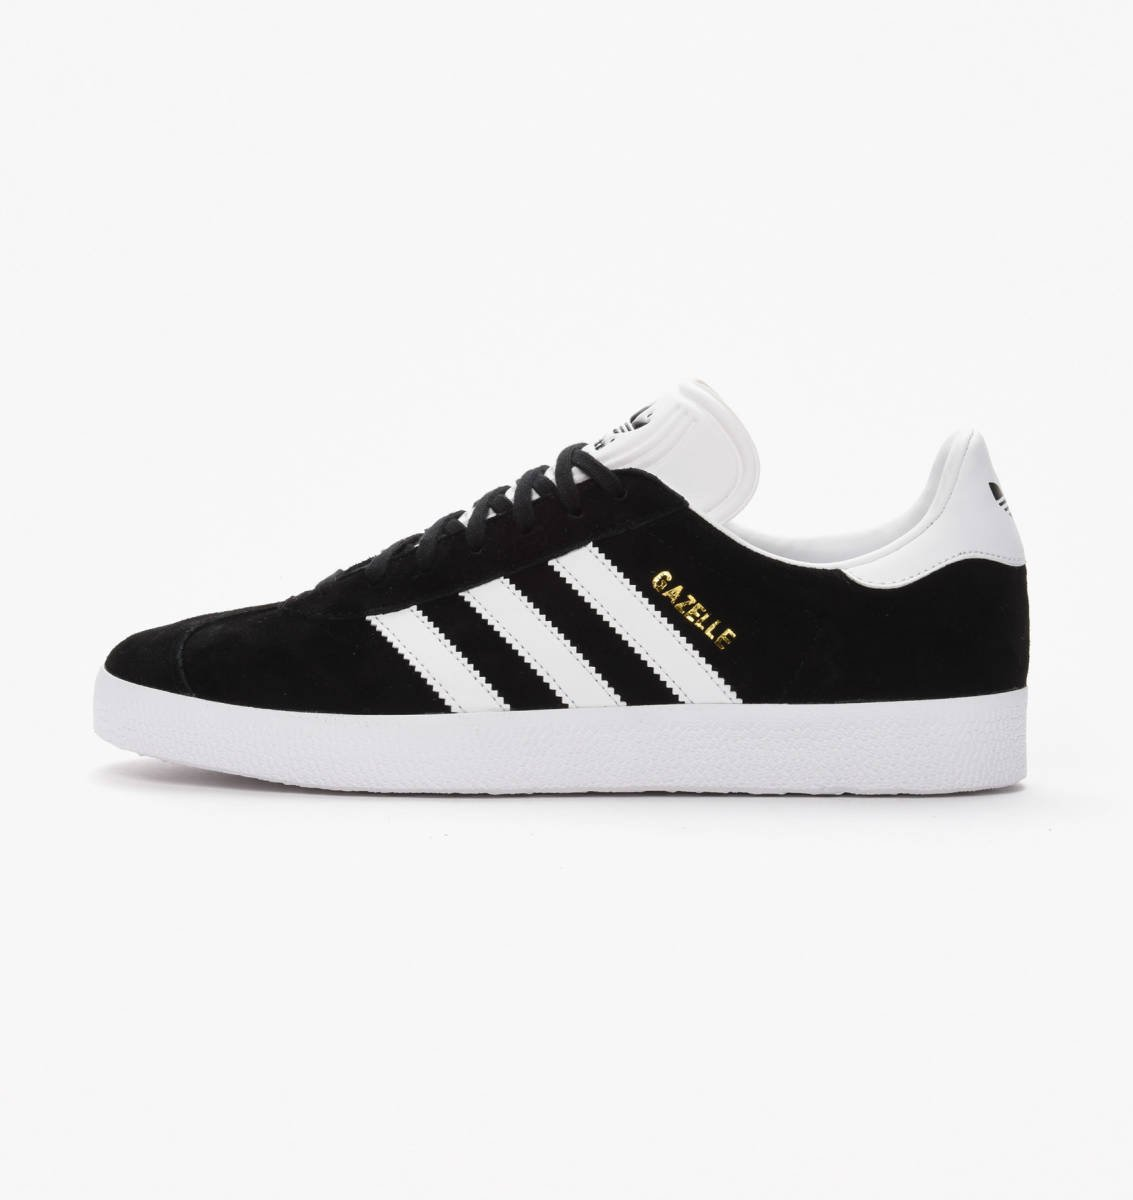 addidas schuhe billig, adidas Los Angeles Sneaker Damen